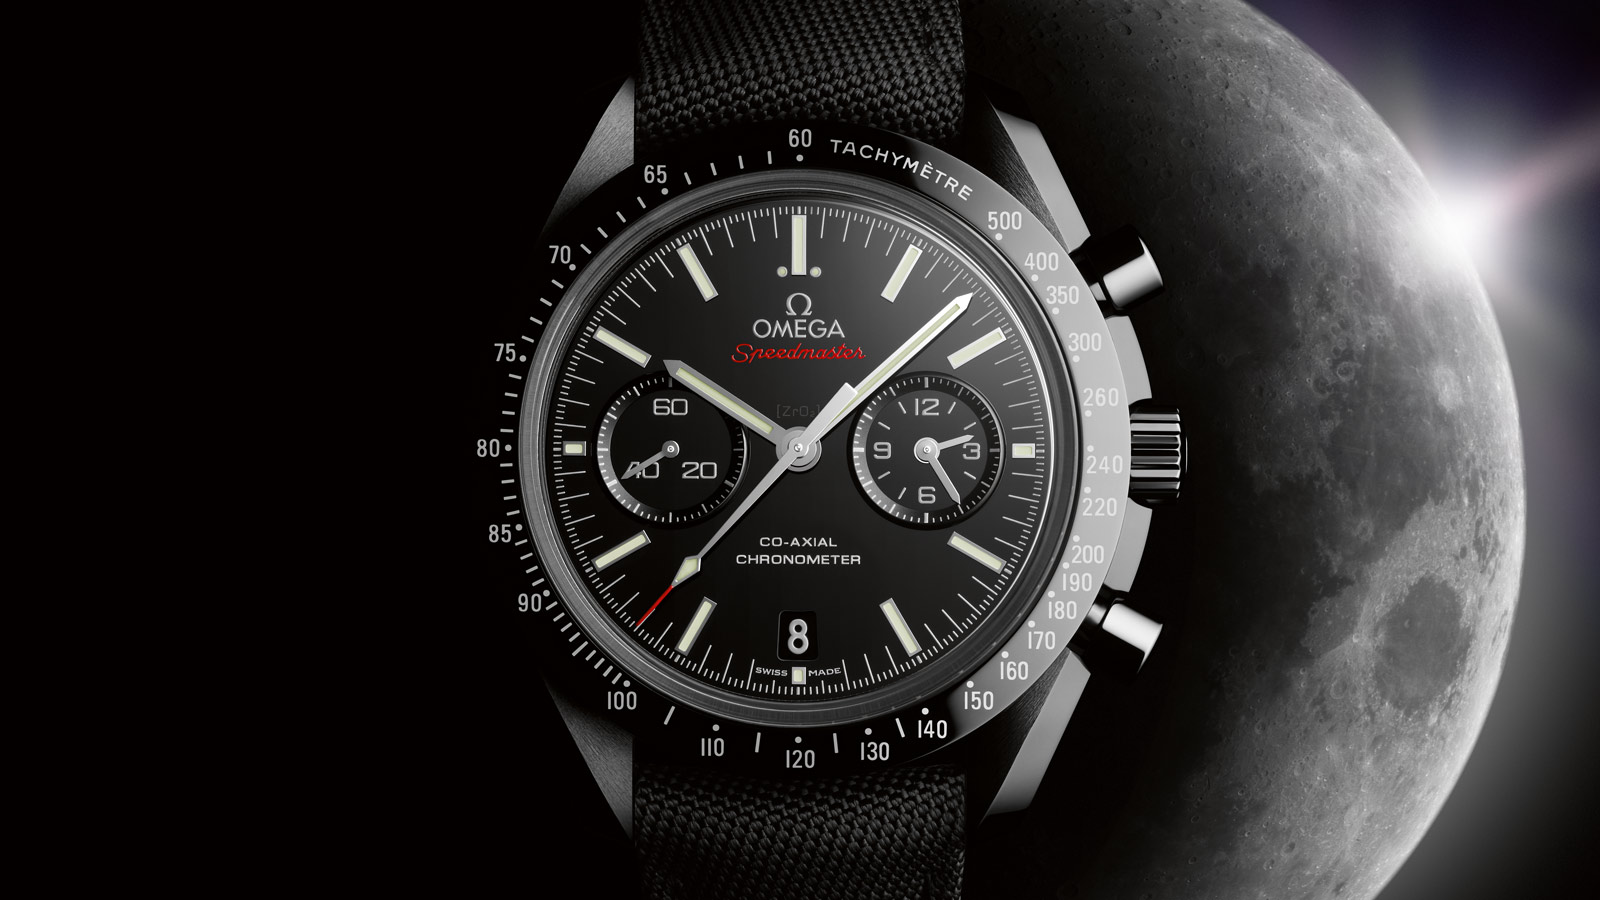 Speedmaster ムーンウォッチ Moonwatch Omega Co‑Axial Chronograph 44.25 mm - 311.92.44.51.01.003 - ビュー 1